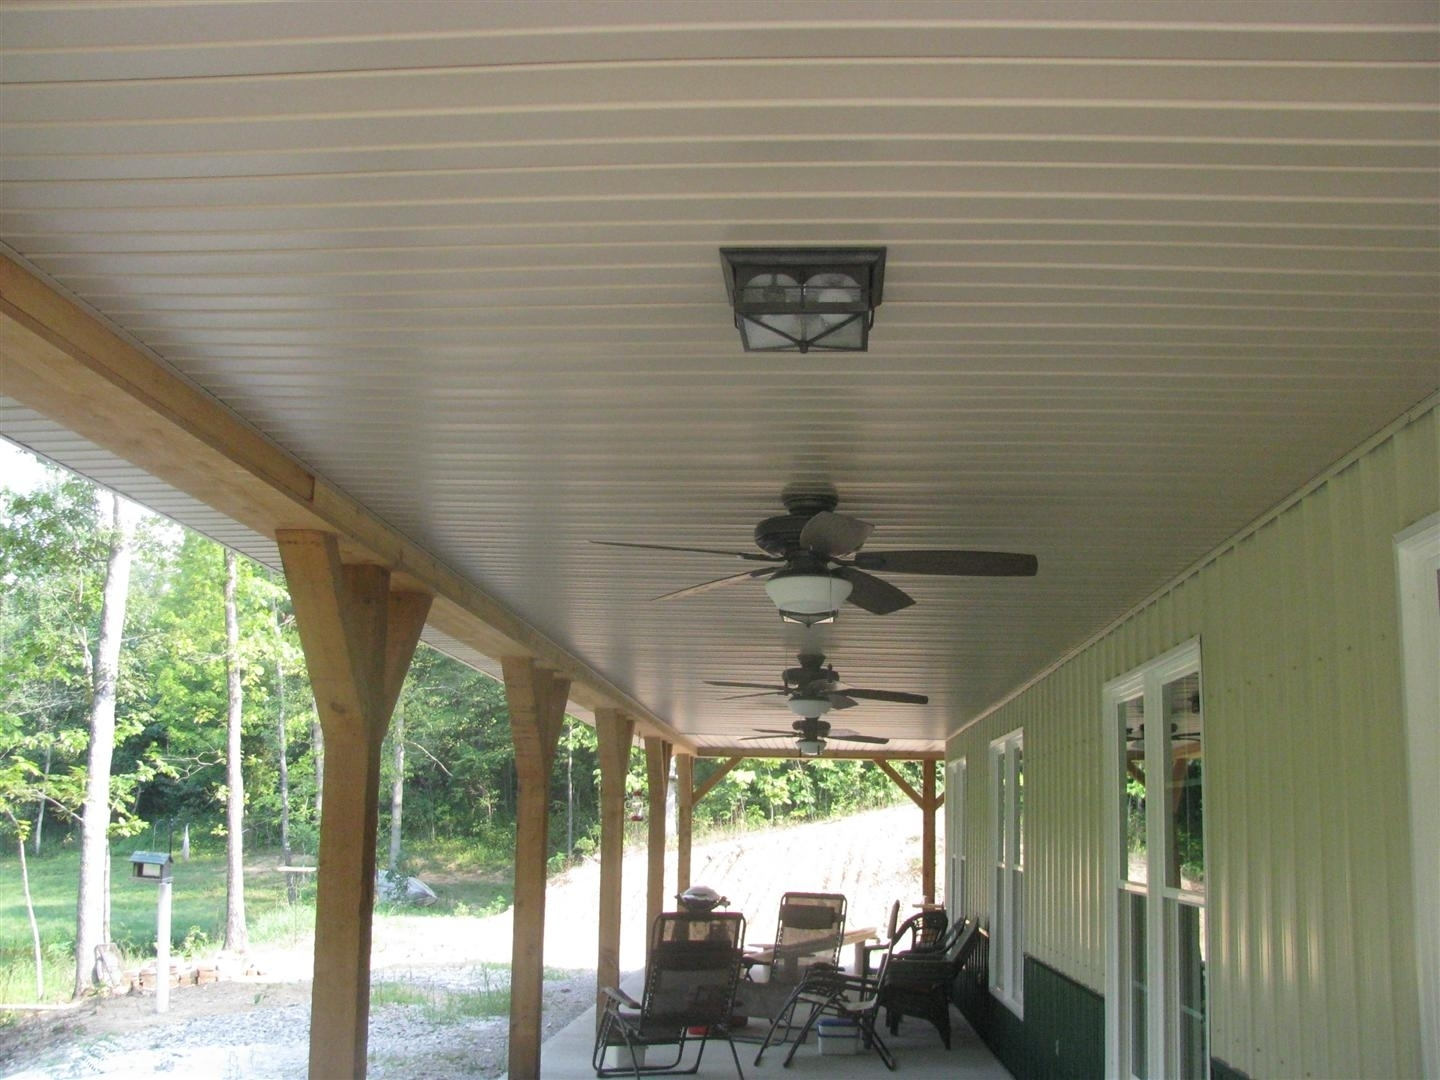 Outdoor Front Porch Ceiling Lights Pertaining To Ceiling Outdoor Lights For Front Porch (#13 of 15)